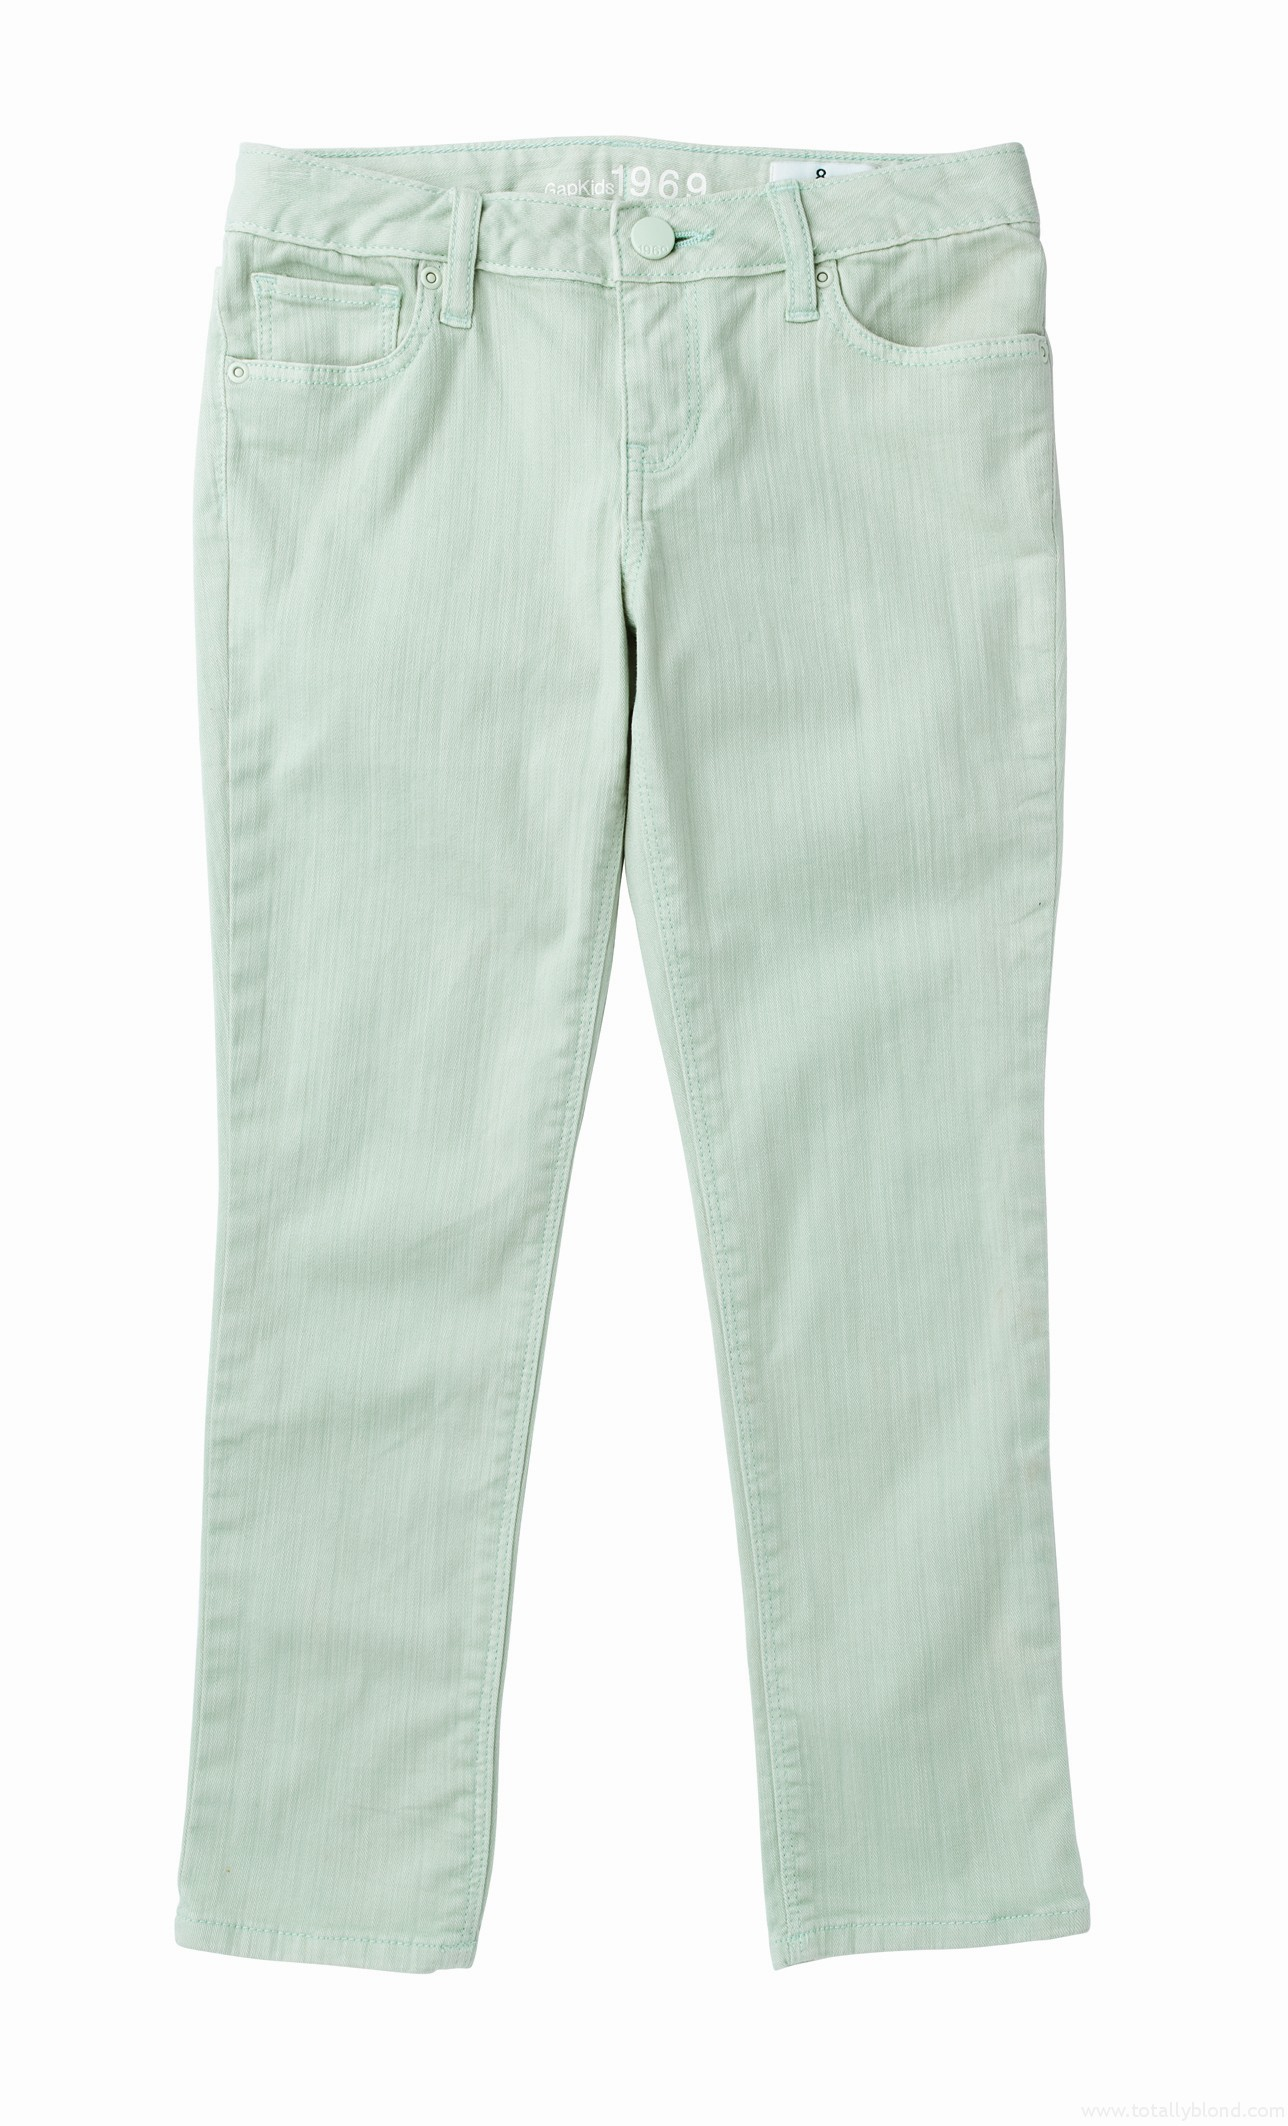 Pastel_green_jeans